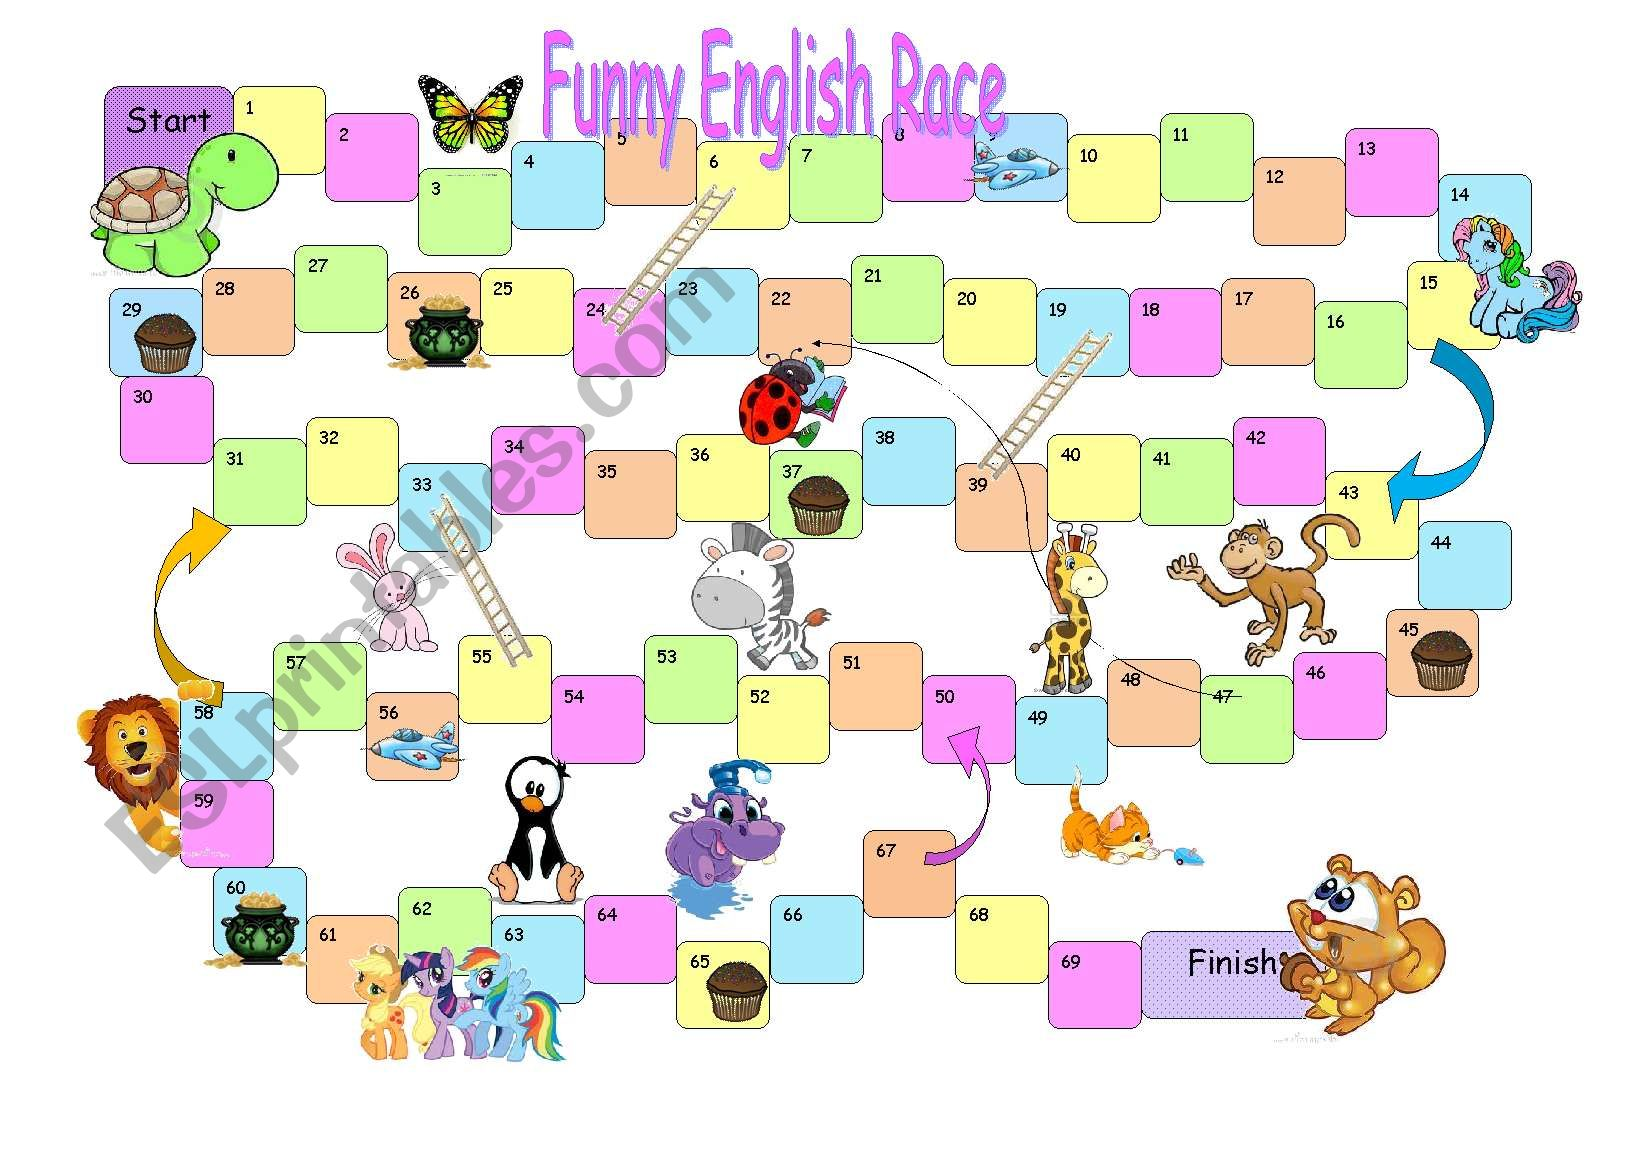 Board Game Funny English Race Orange Cards